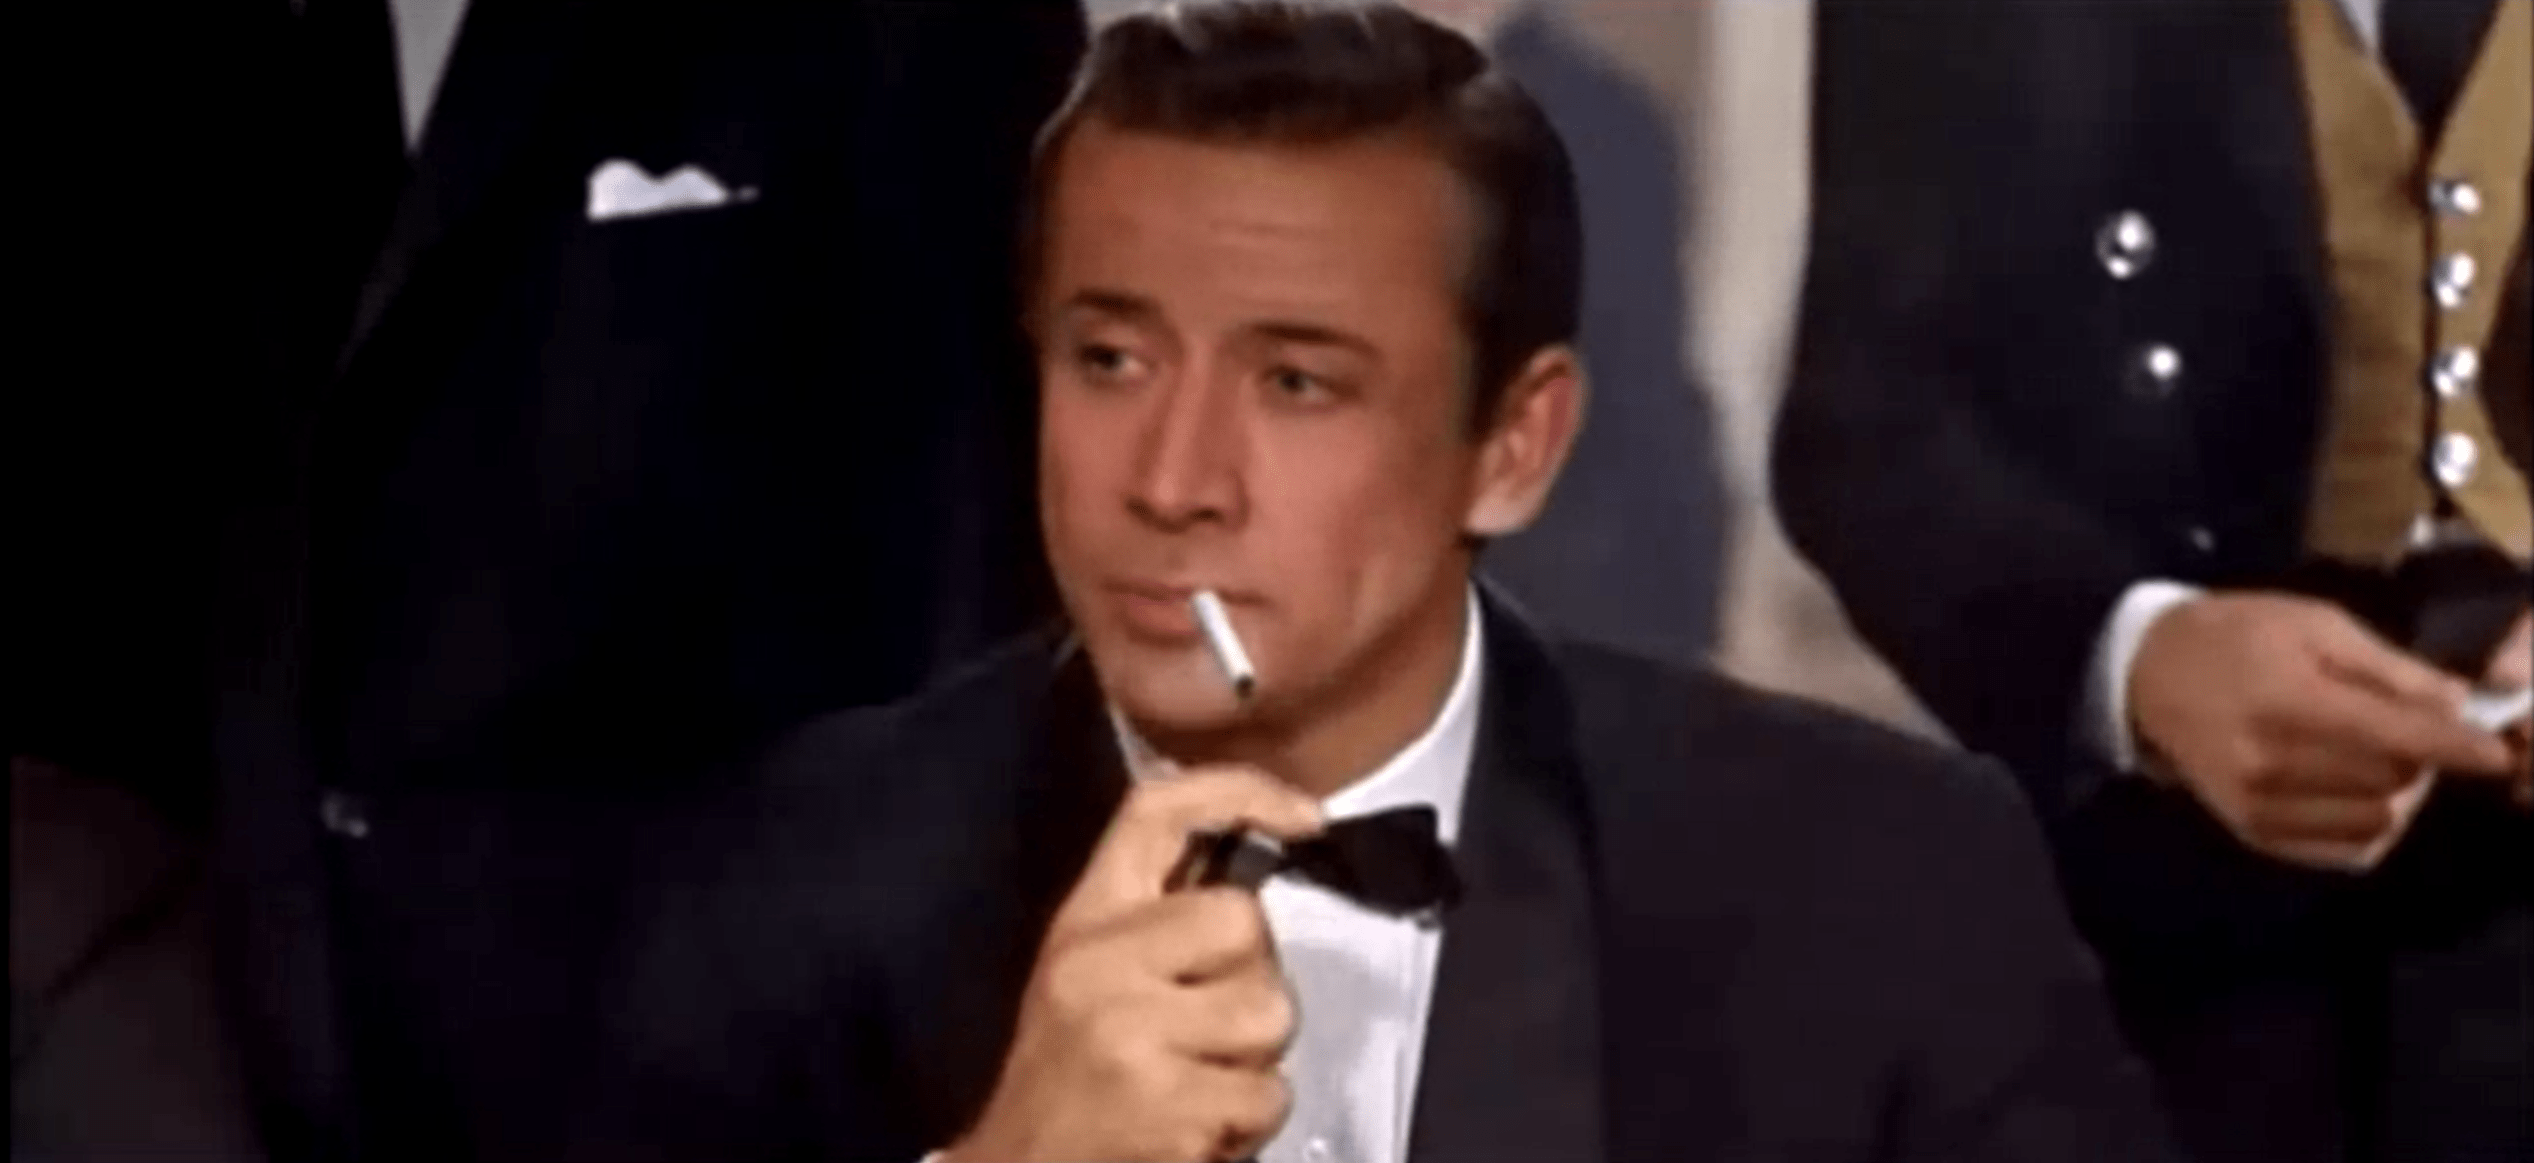 DIY Neural Networks Let You Watch Nic Cage Play James Bond